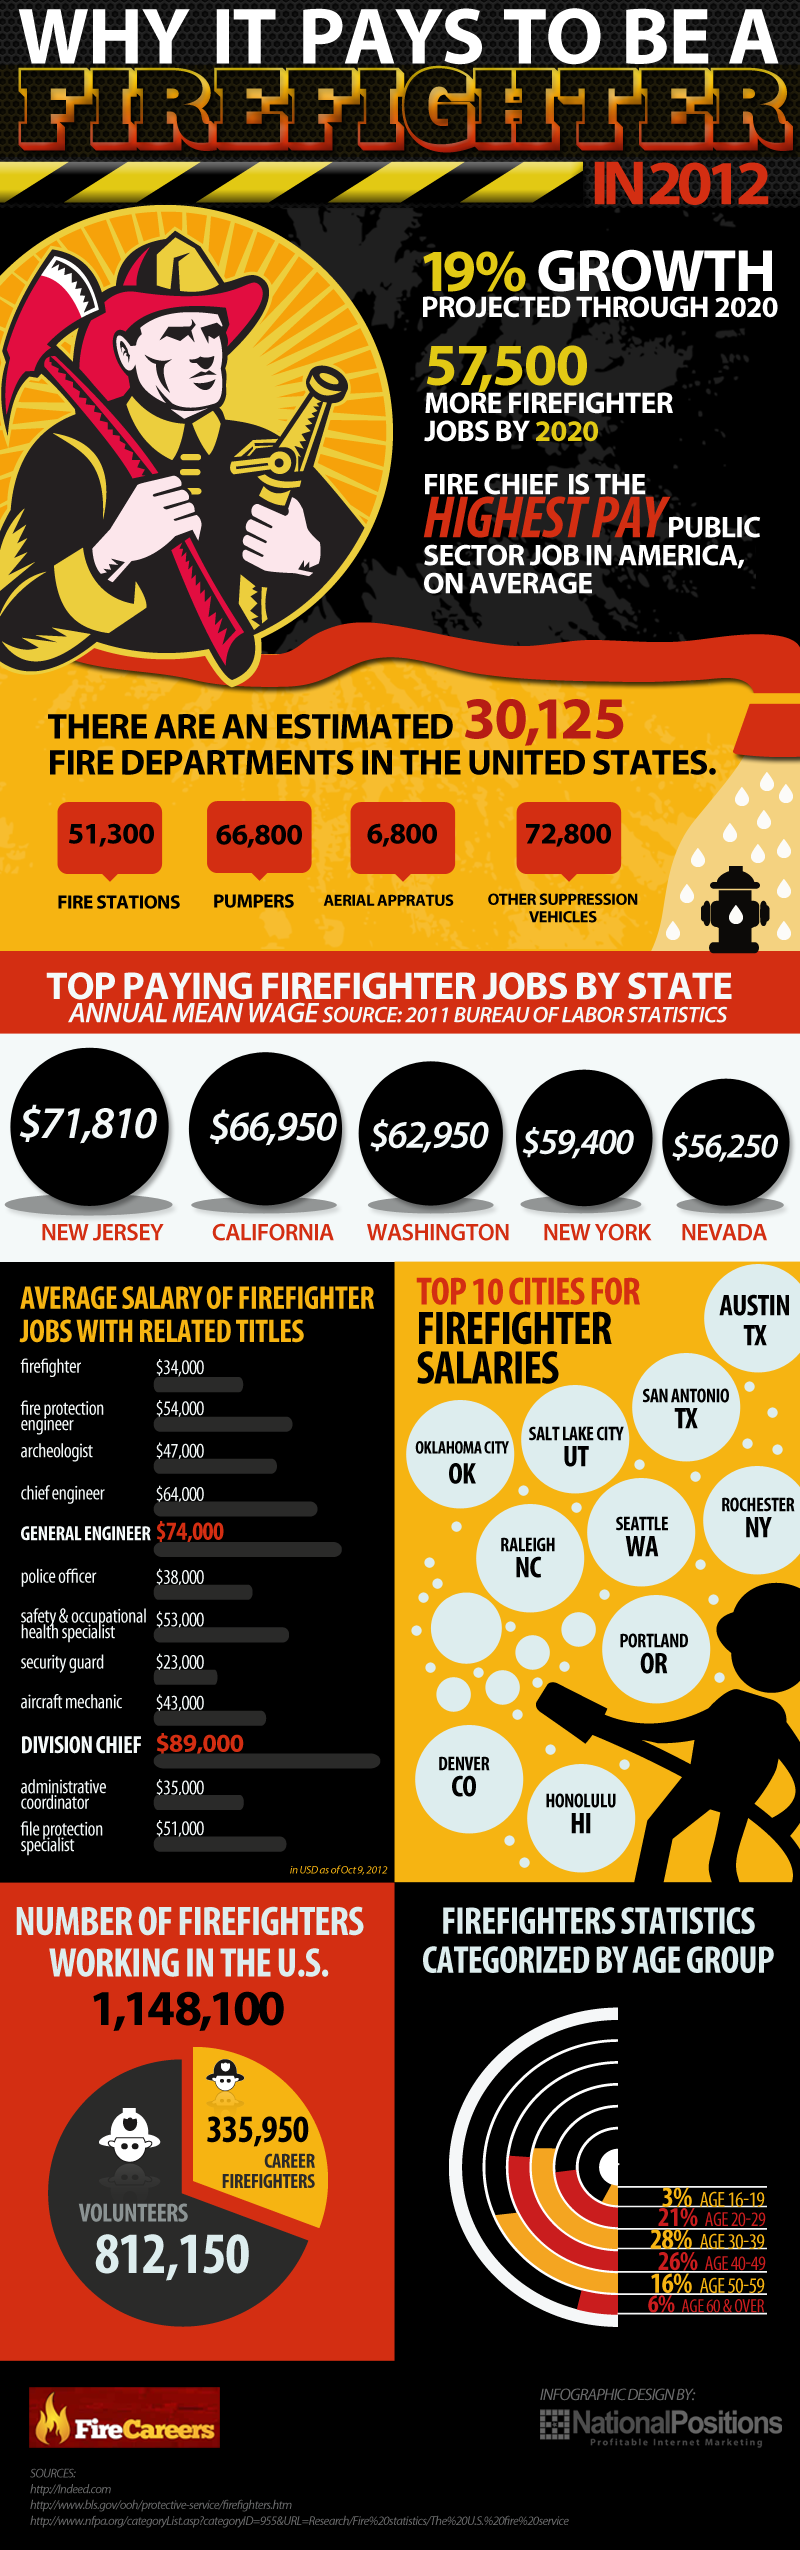 Why It Pays to be a Firefighter in 2012